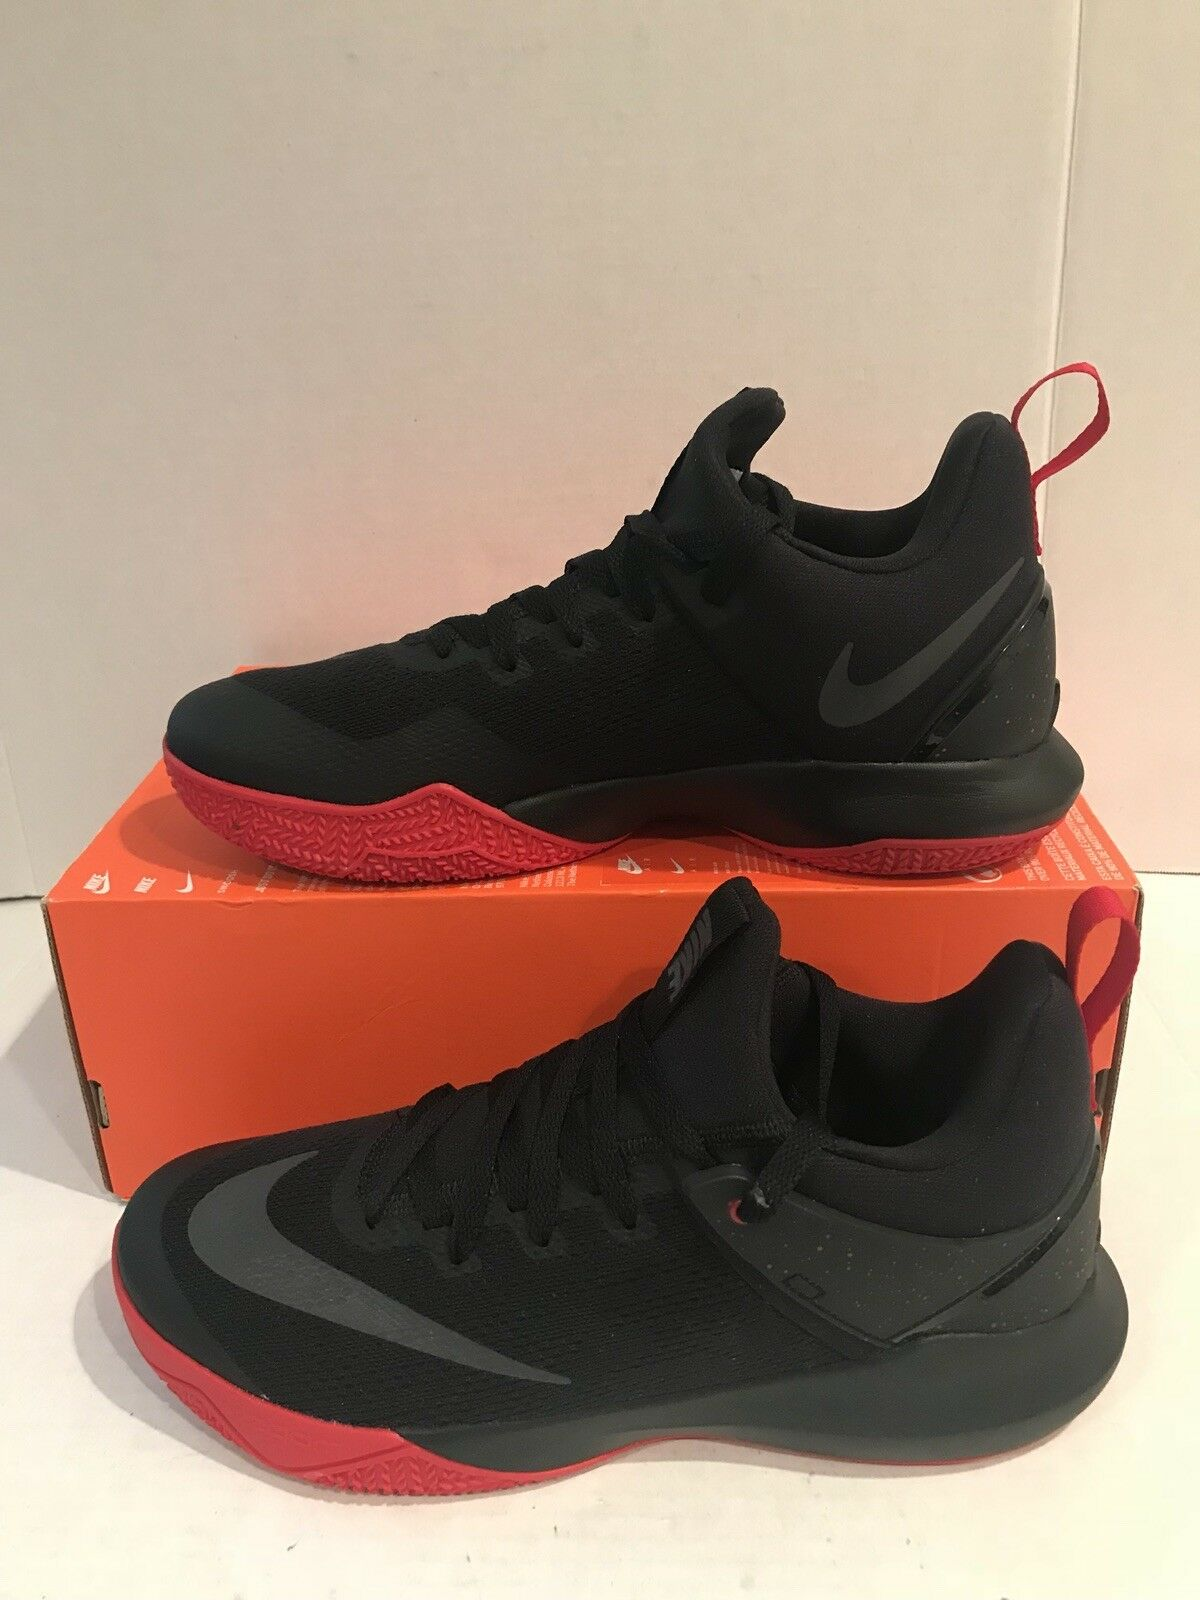 competitive price 72a52 ff05a NEW NIKE ZOOM SHIFT MEN S BASKETBALL 897653 SHOES BLACK RED SIZE 10 897653  BASKETBALL 003 dbf83f